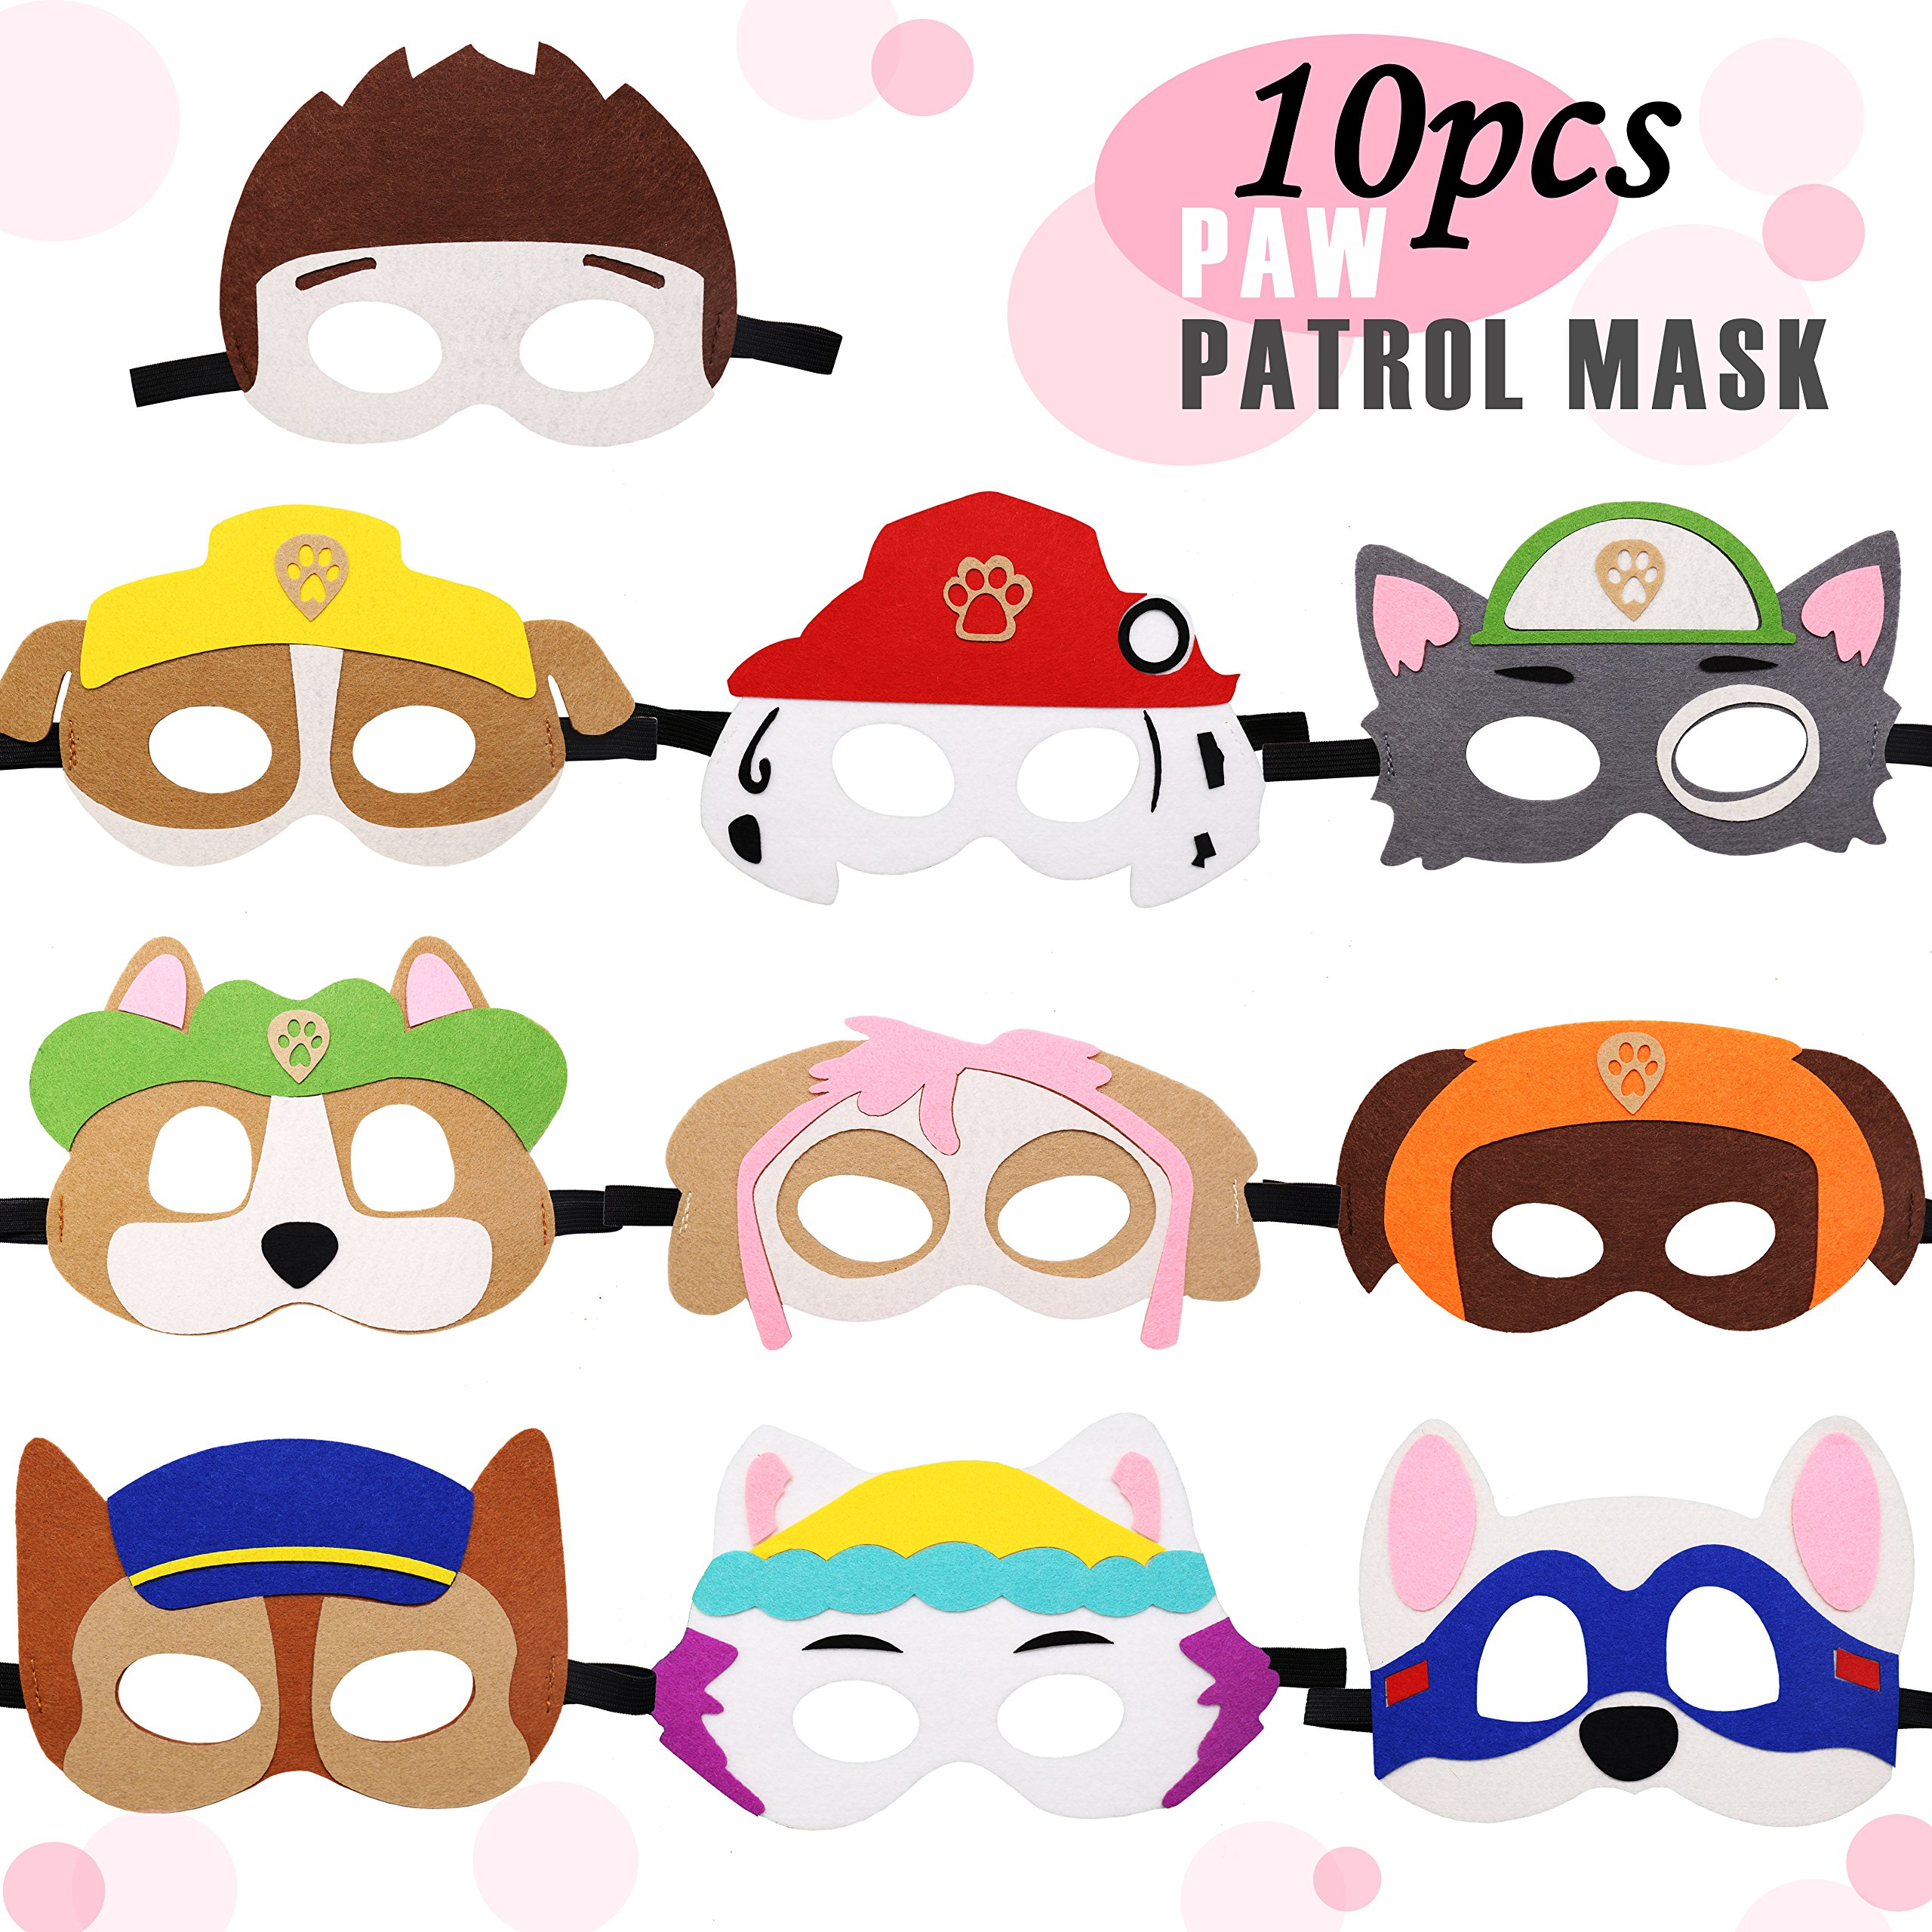 8 Pack PAW Patrol Kids Birthday Party Masks Rubble Chase Skye Marshall